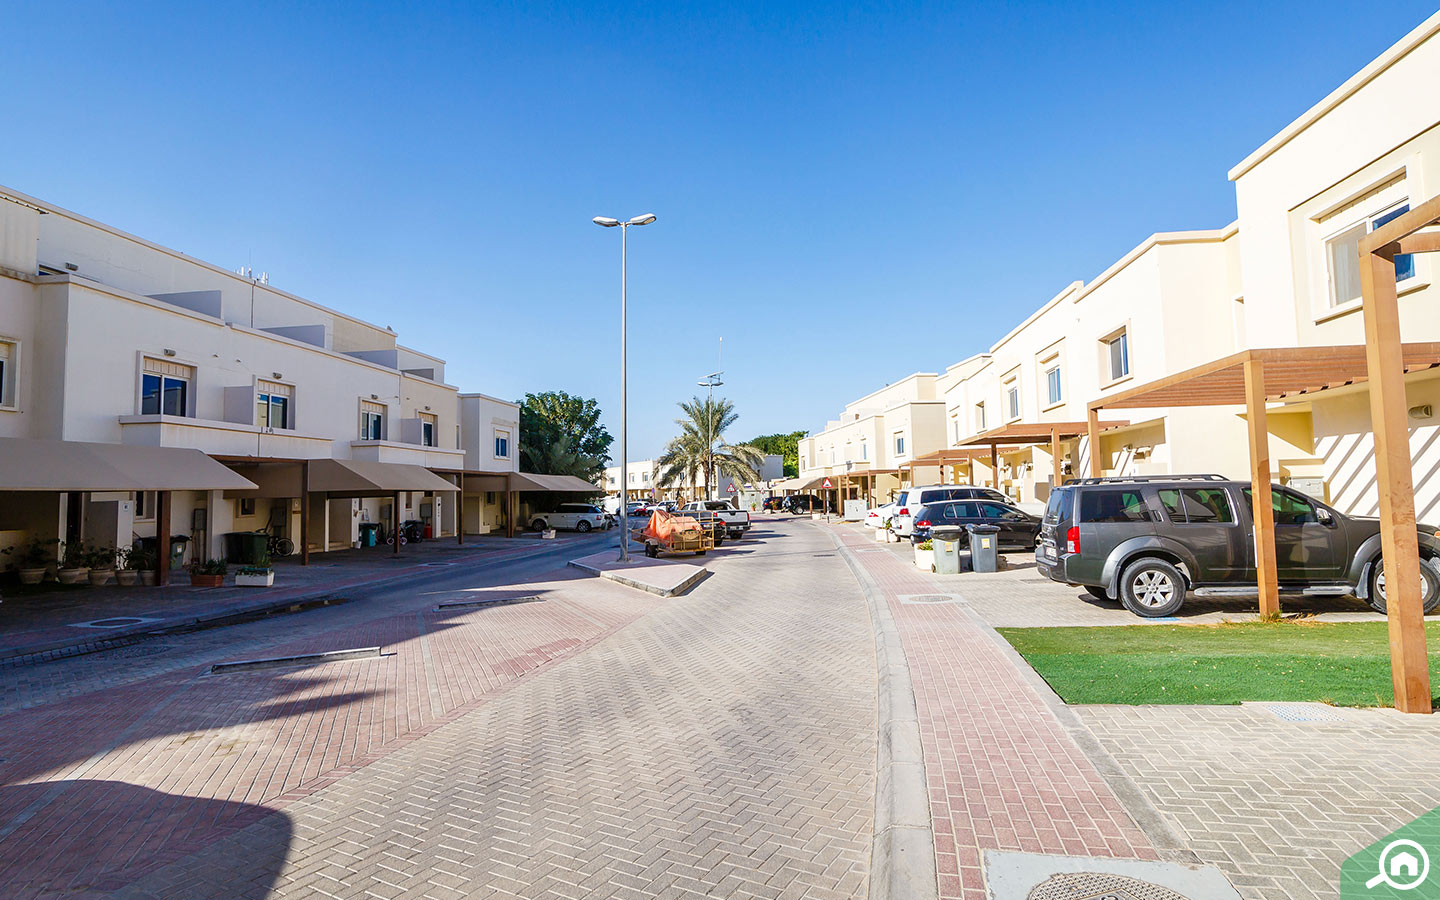 Villas in Al Reef